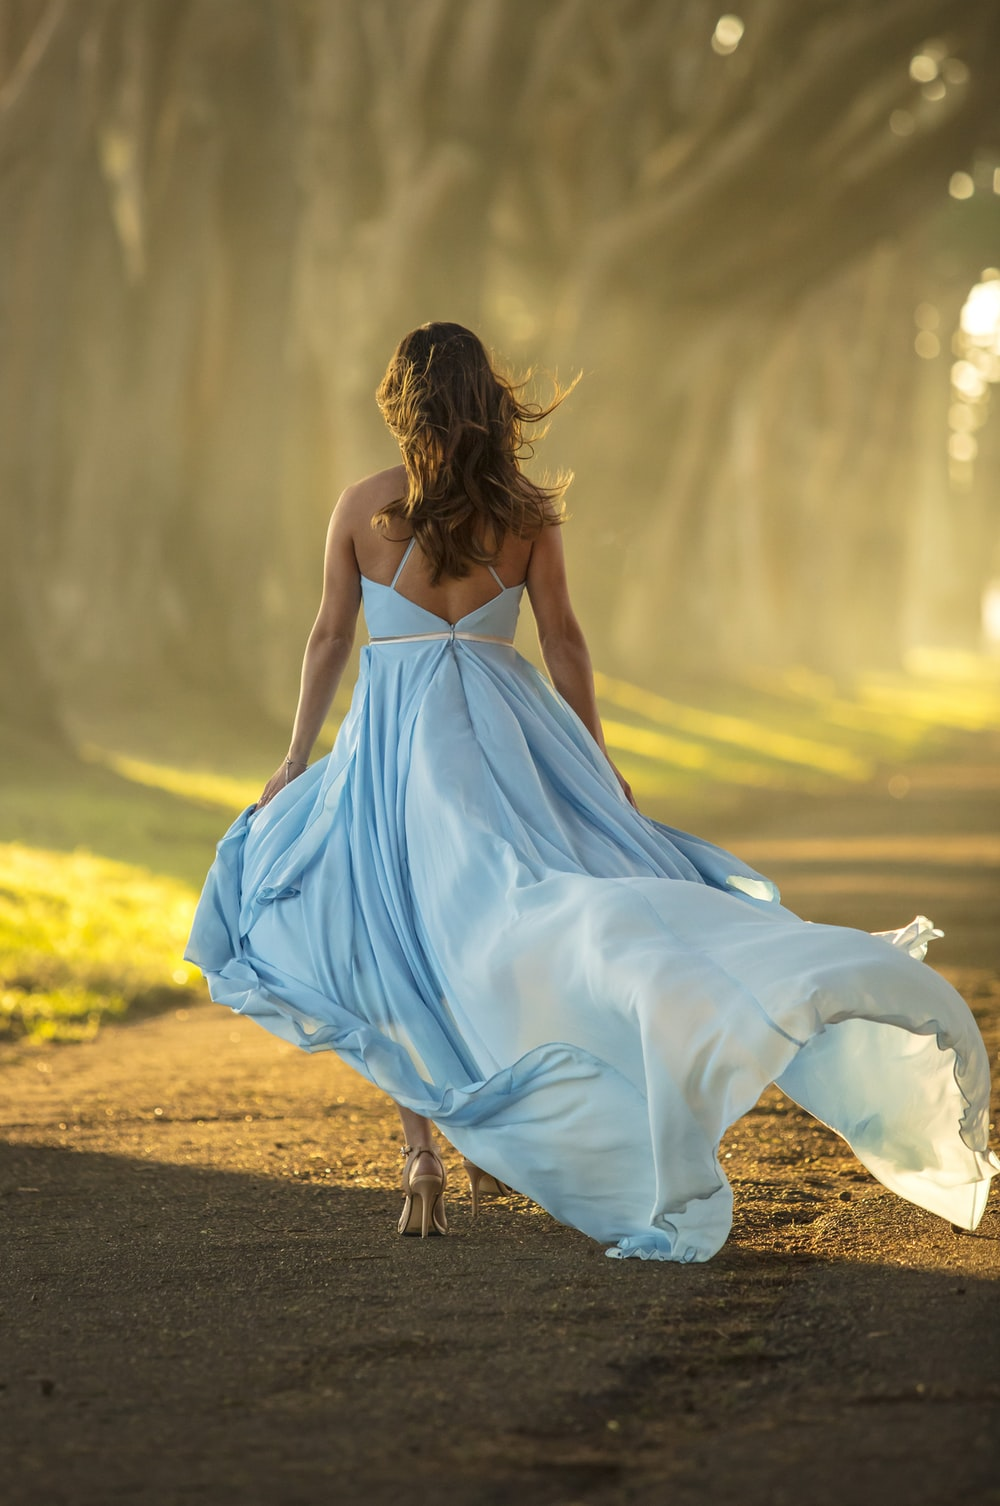 woman in blue dress walking on road during daytime